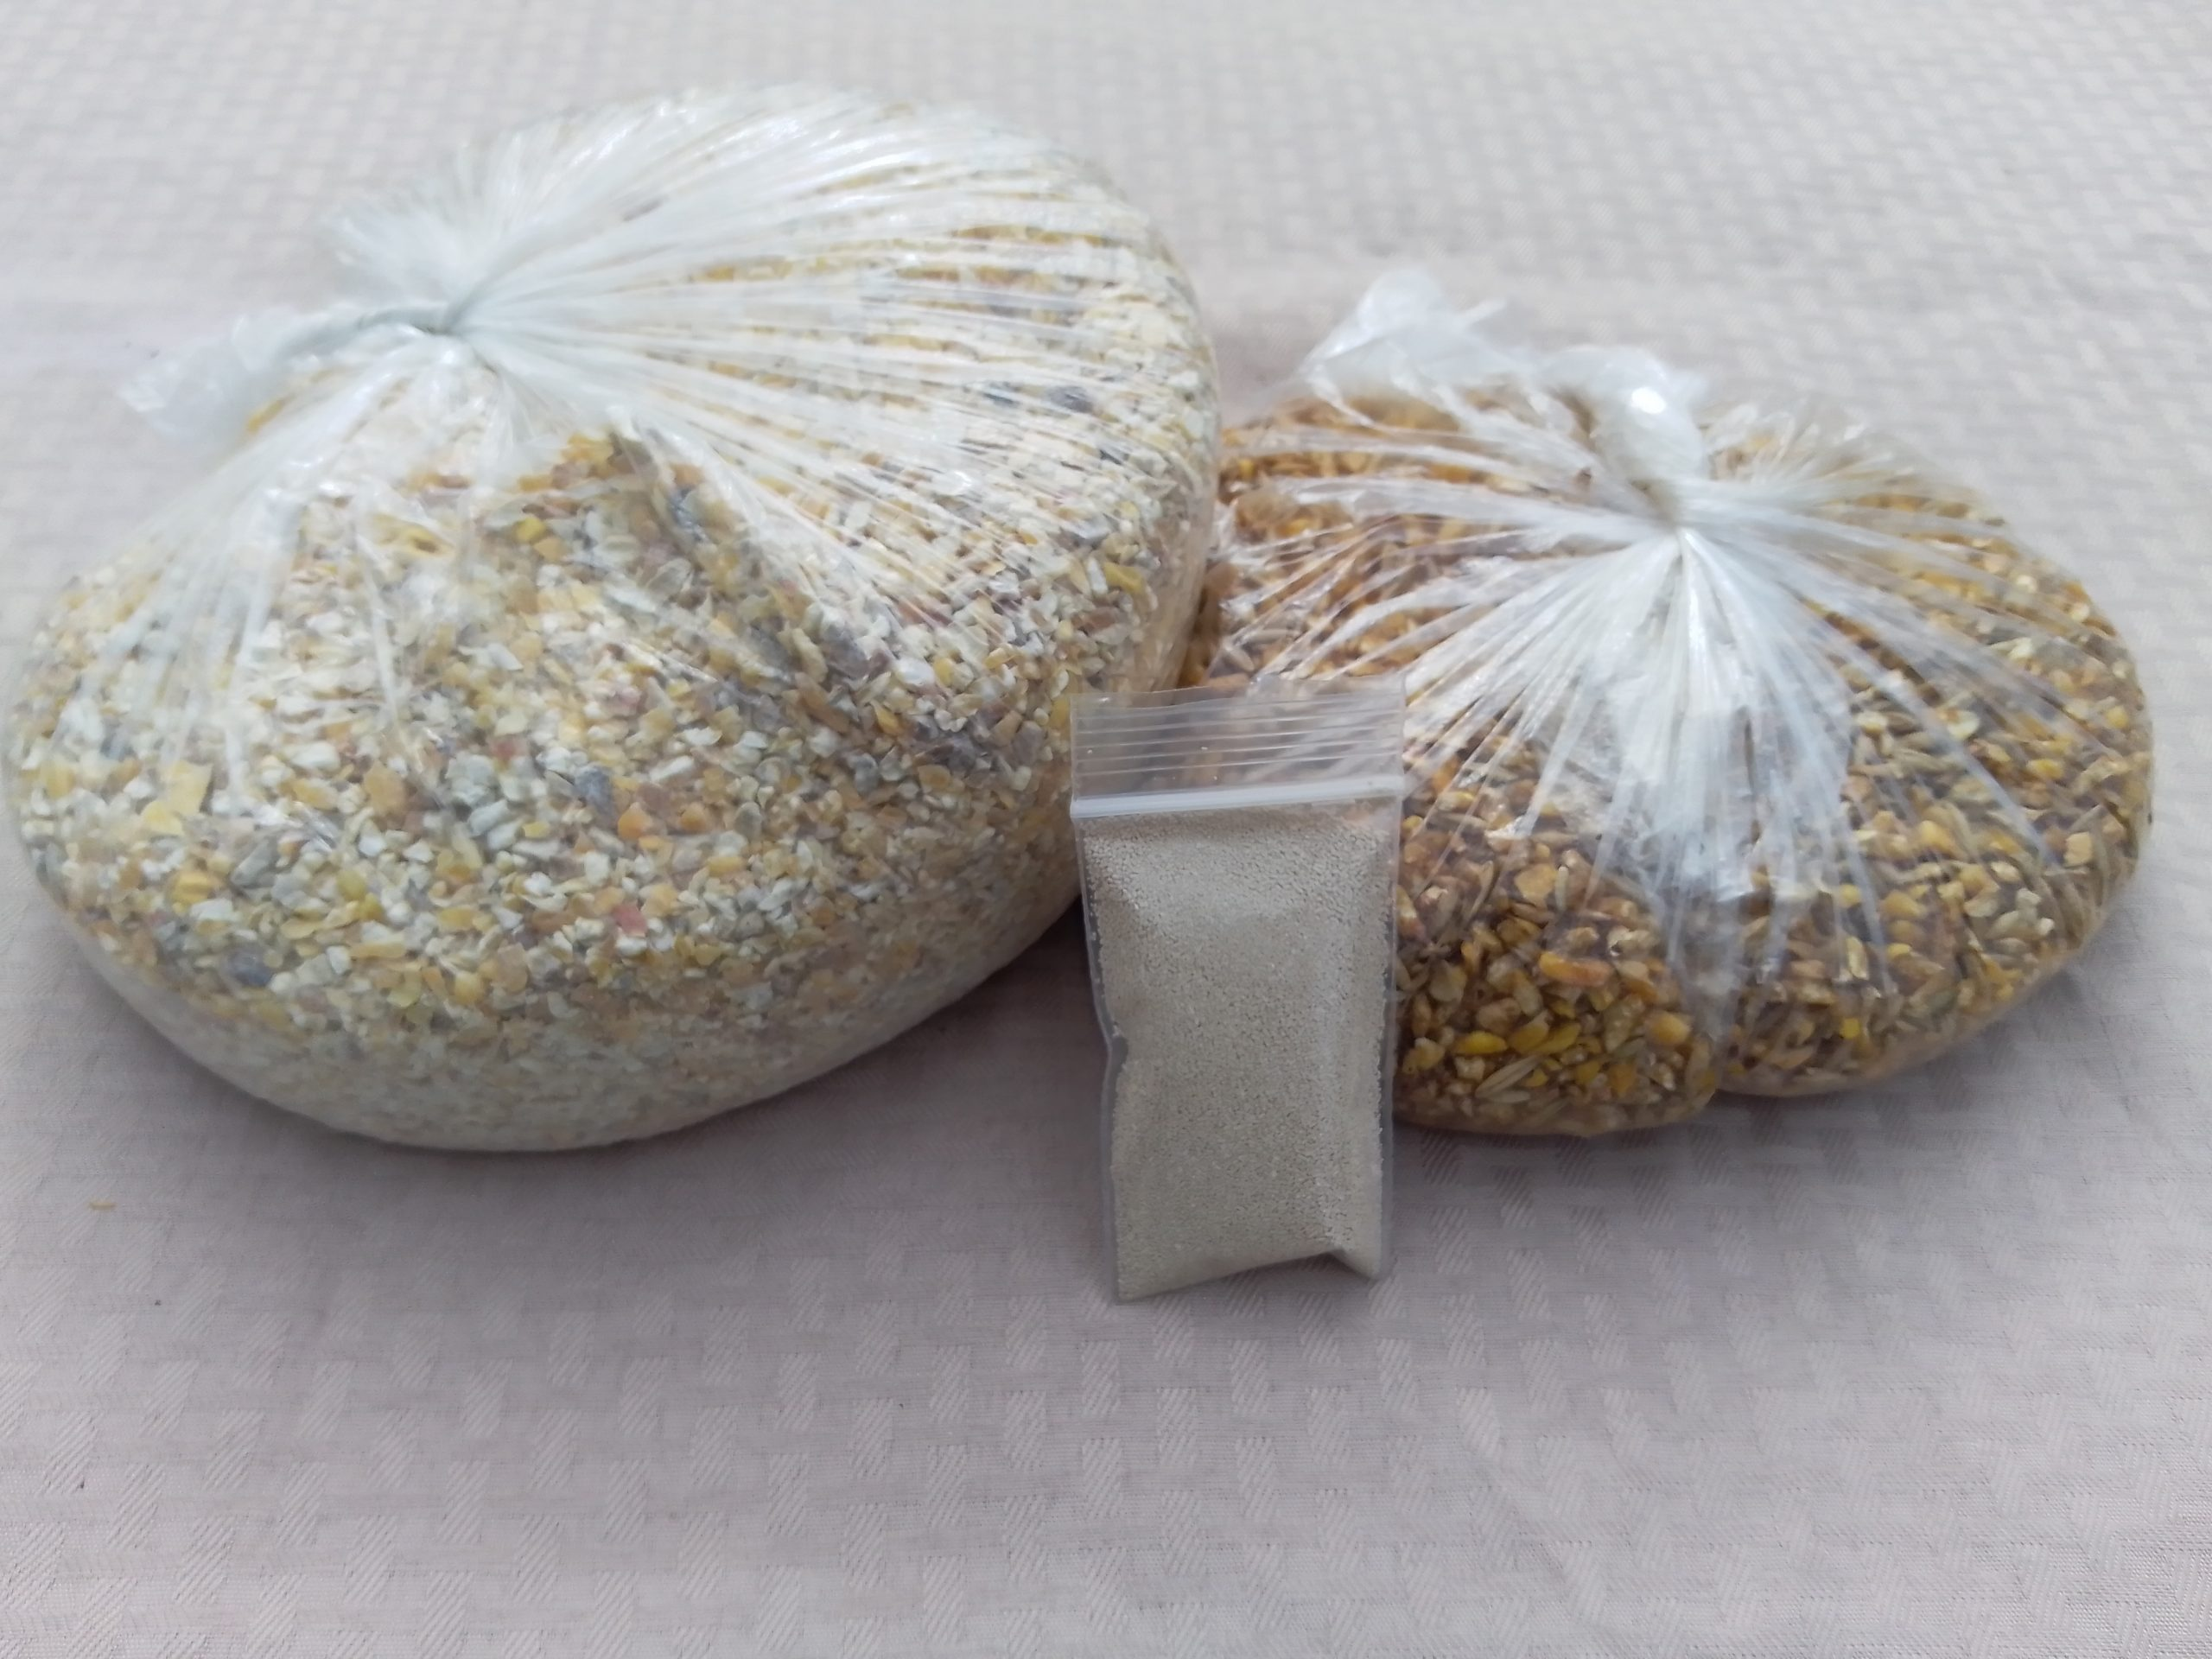 Chopped corn or cracked corn with unpelletized sweet molasses feed